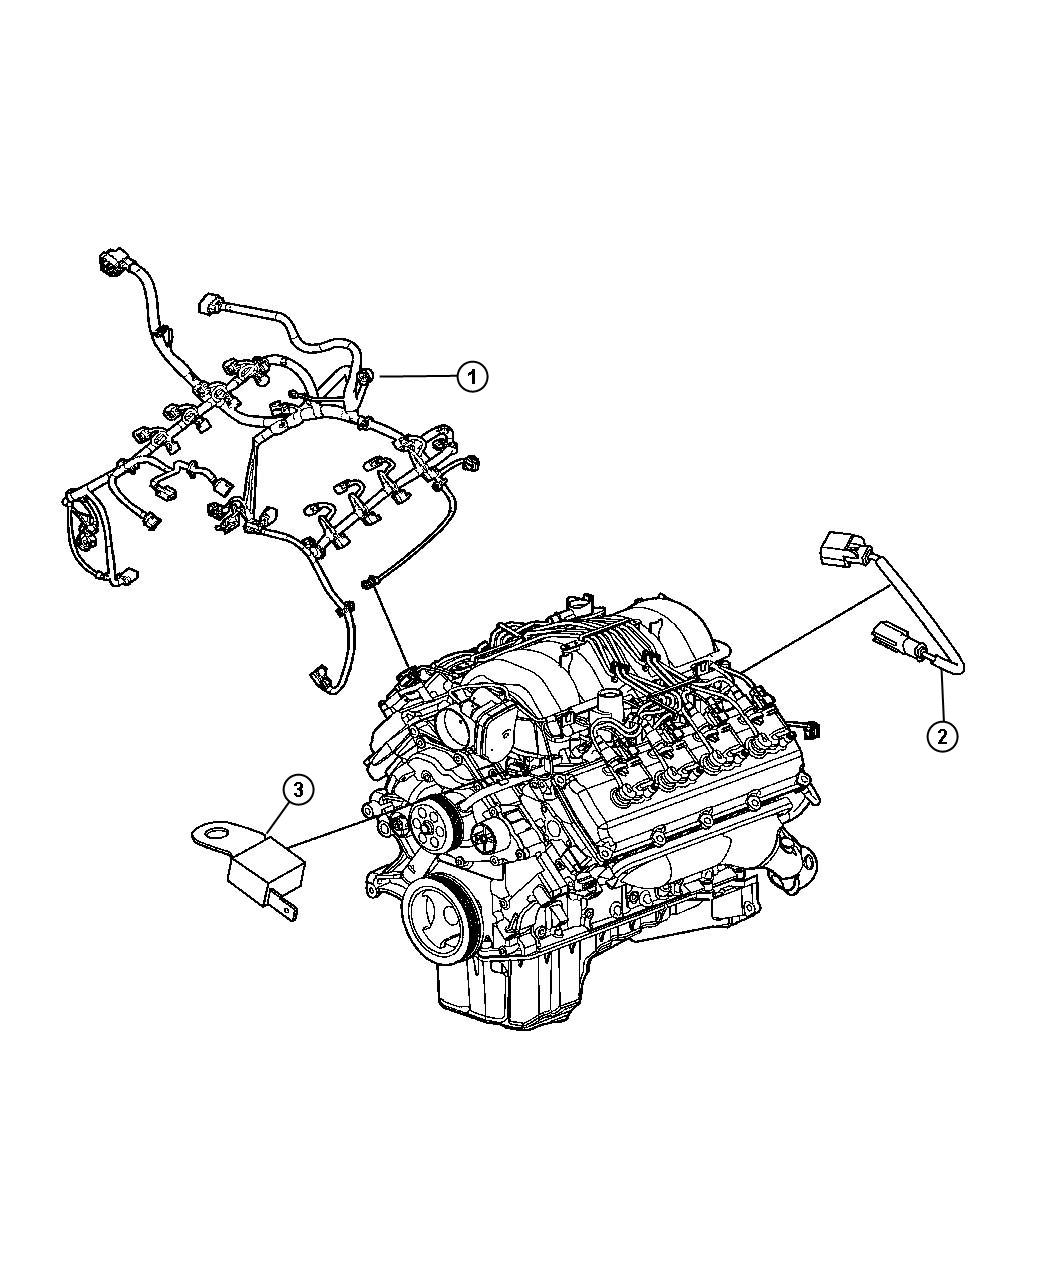 hemi engine wiring  hemi  get free image about wiring diagram